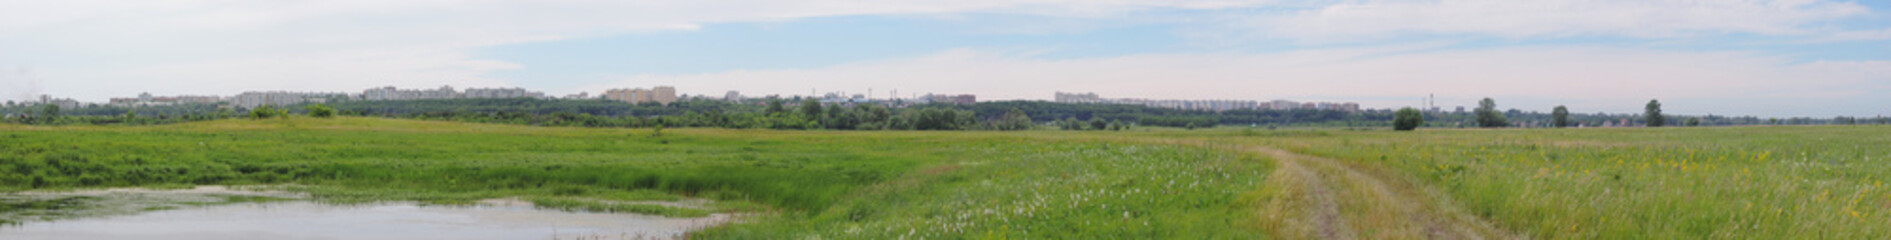 panorama of the city on the horizon